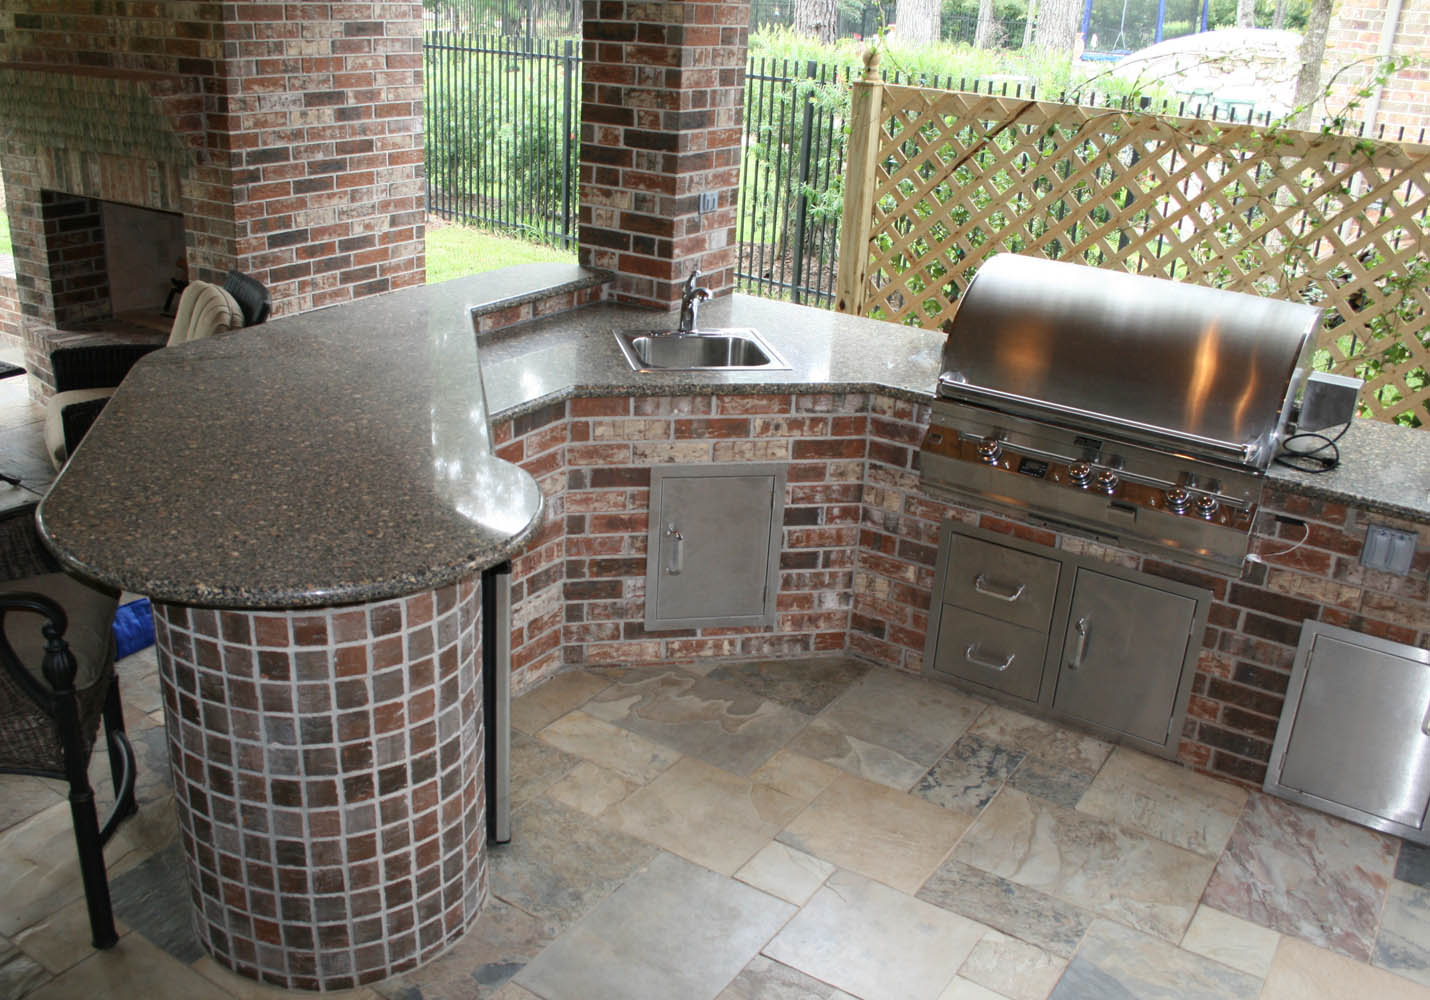 Uncategorized Kitchen Appliances Houston 27 wonderful outdoor kitchen appliances houston pixelmari com awesome wholesale houston